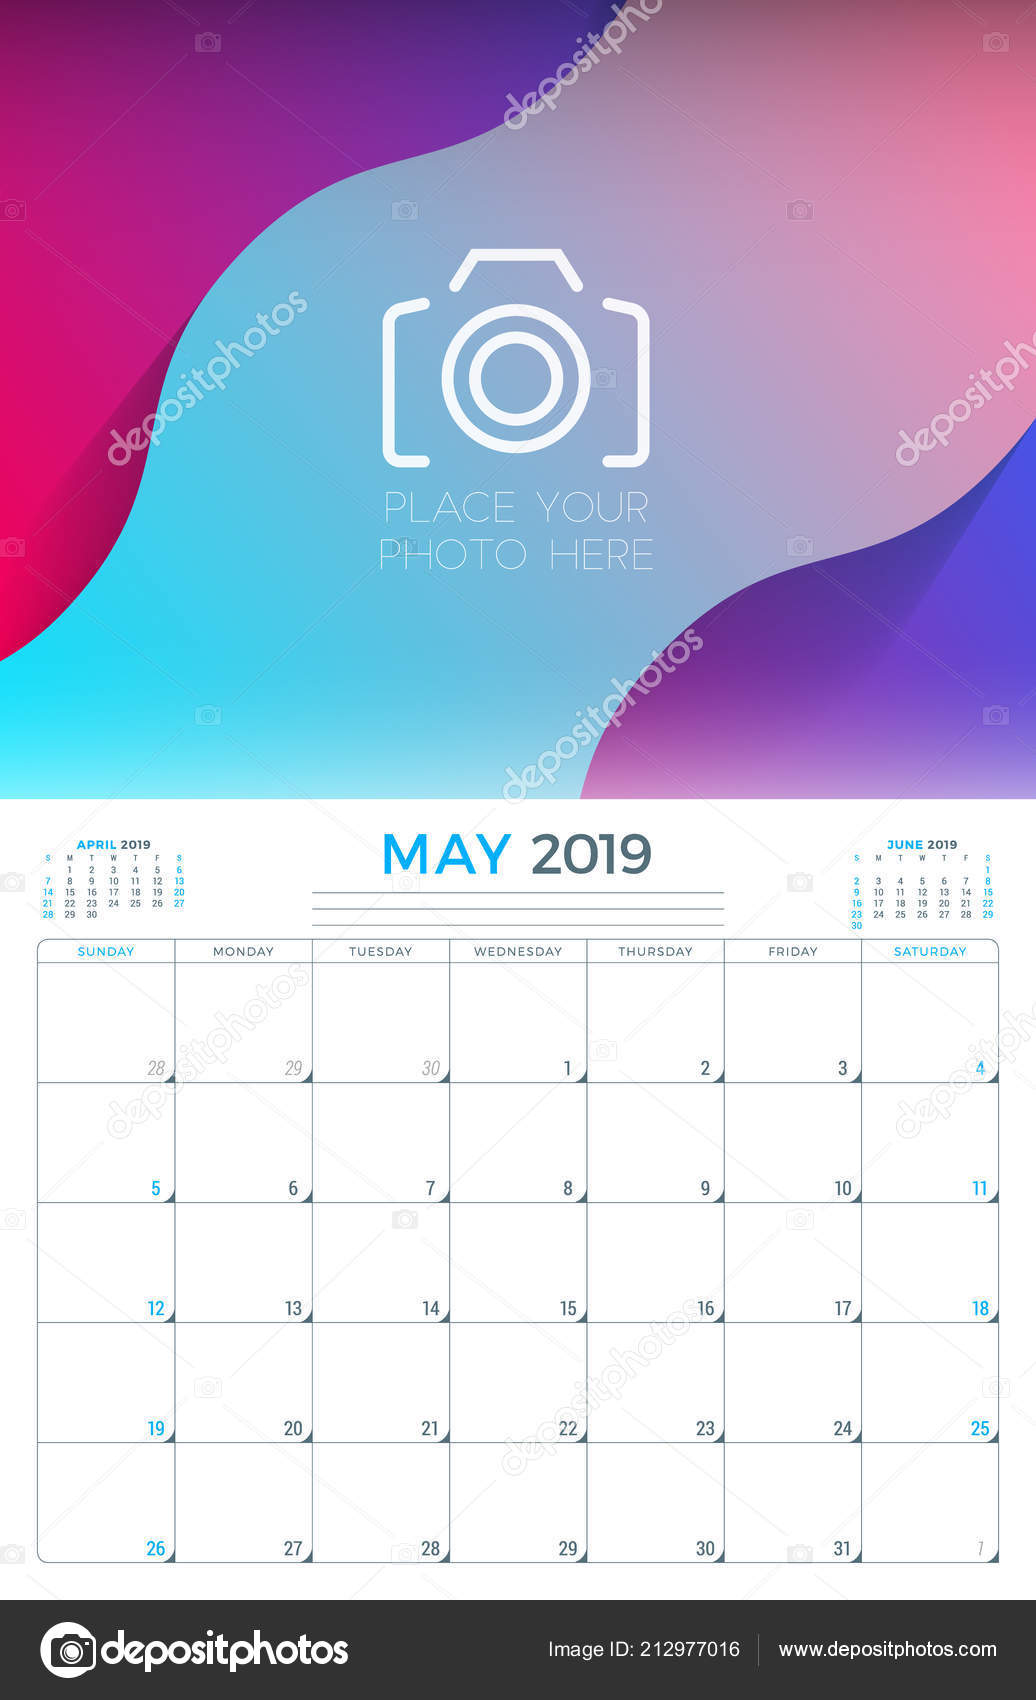 May 2019 Calendar Planner Stationery Design Template Place